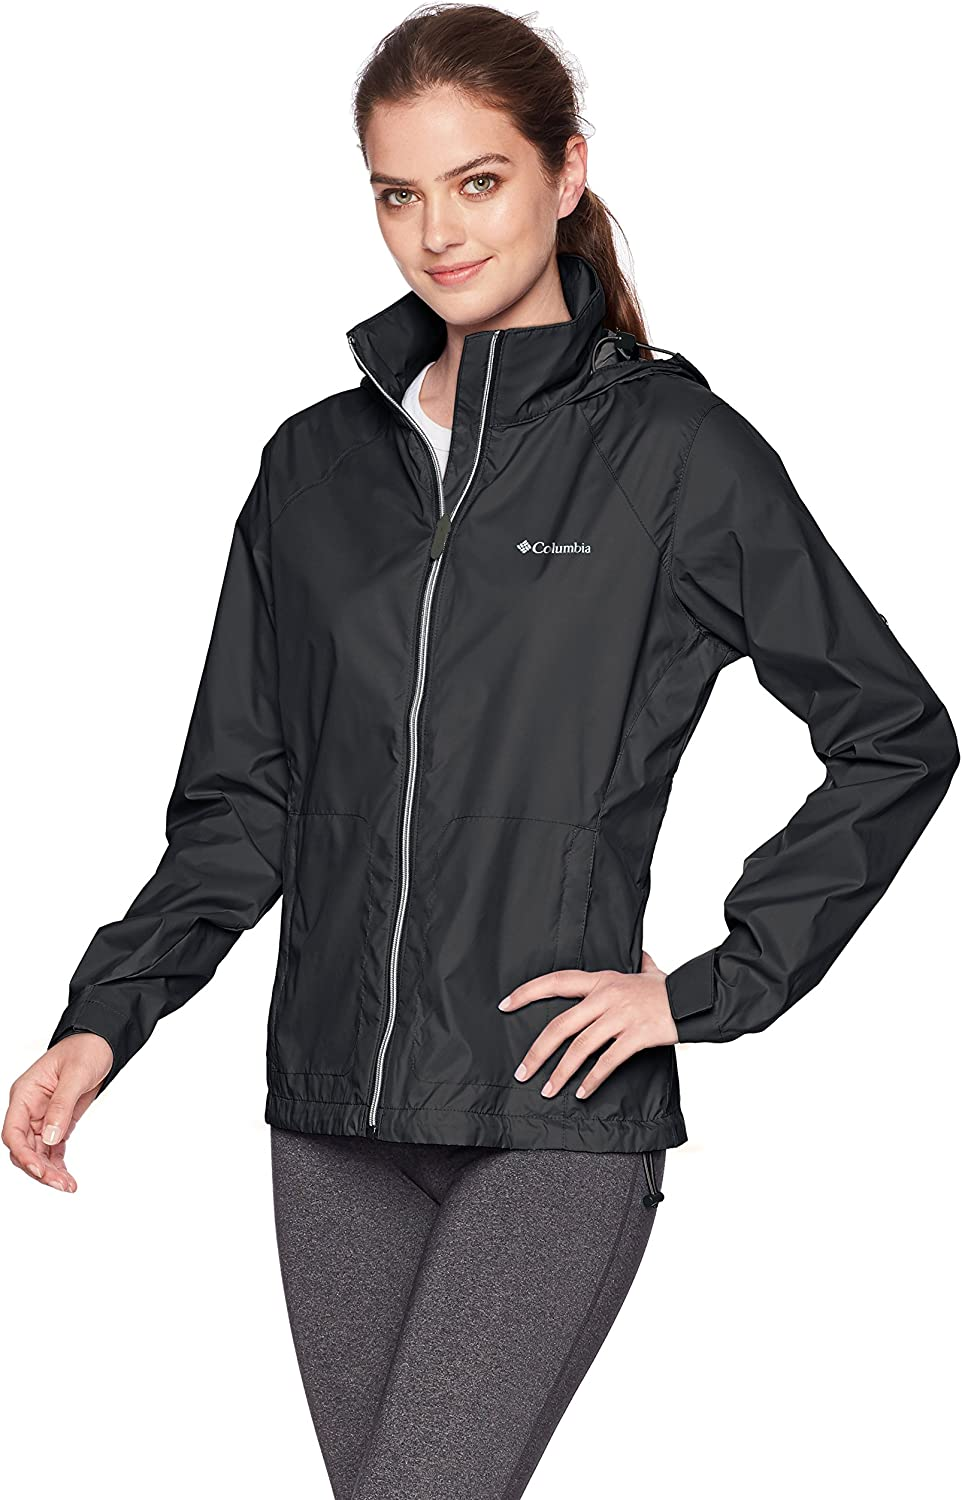 Columbia Womens Standard Switchback Iii Adjustable Waterproof Rain Jacket